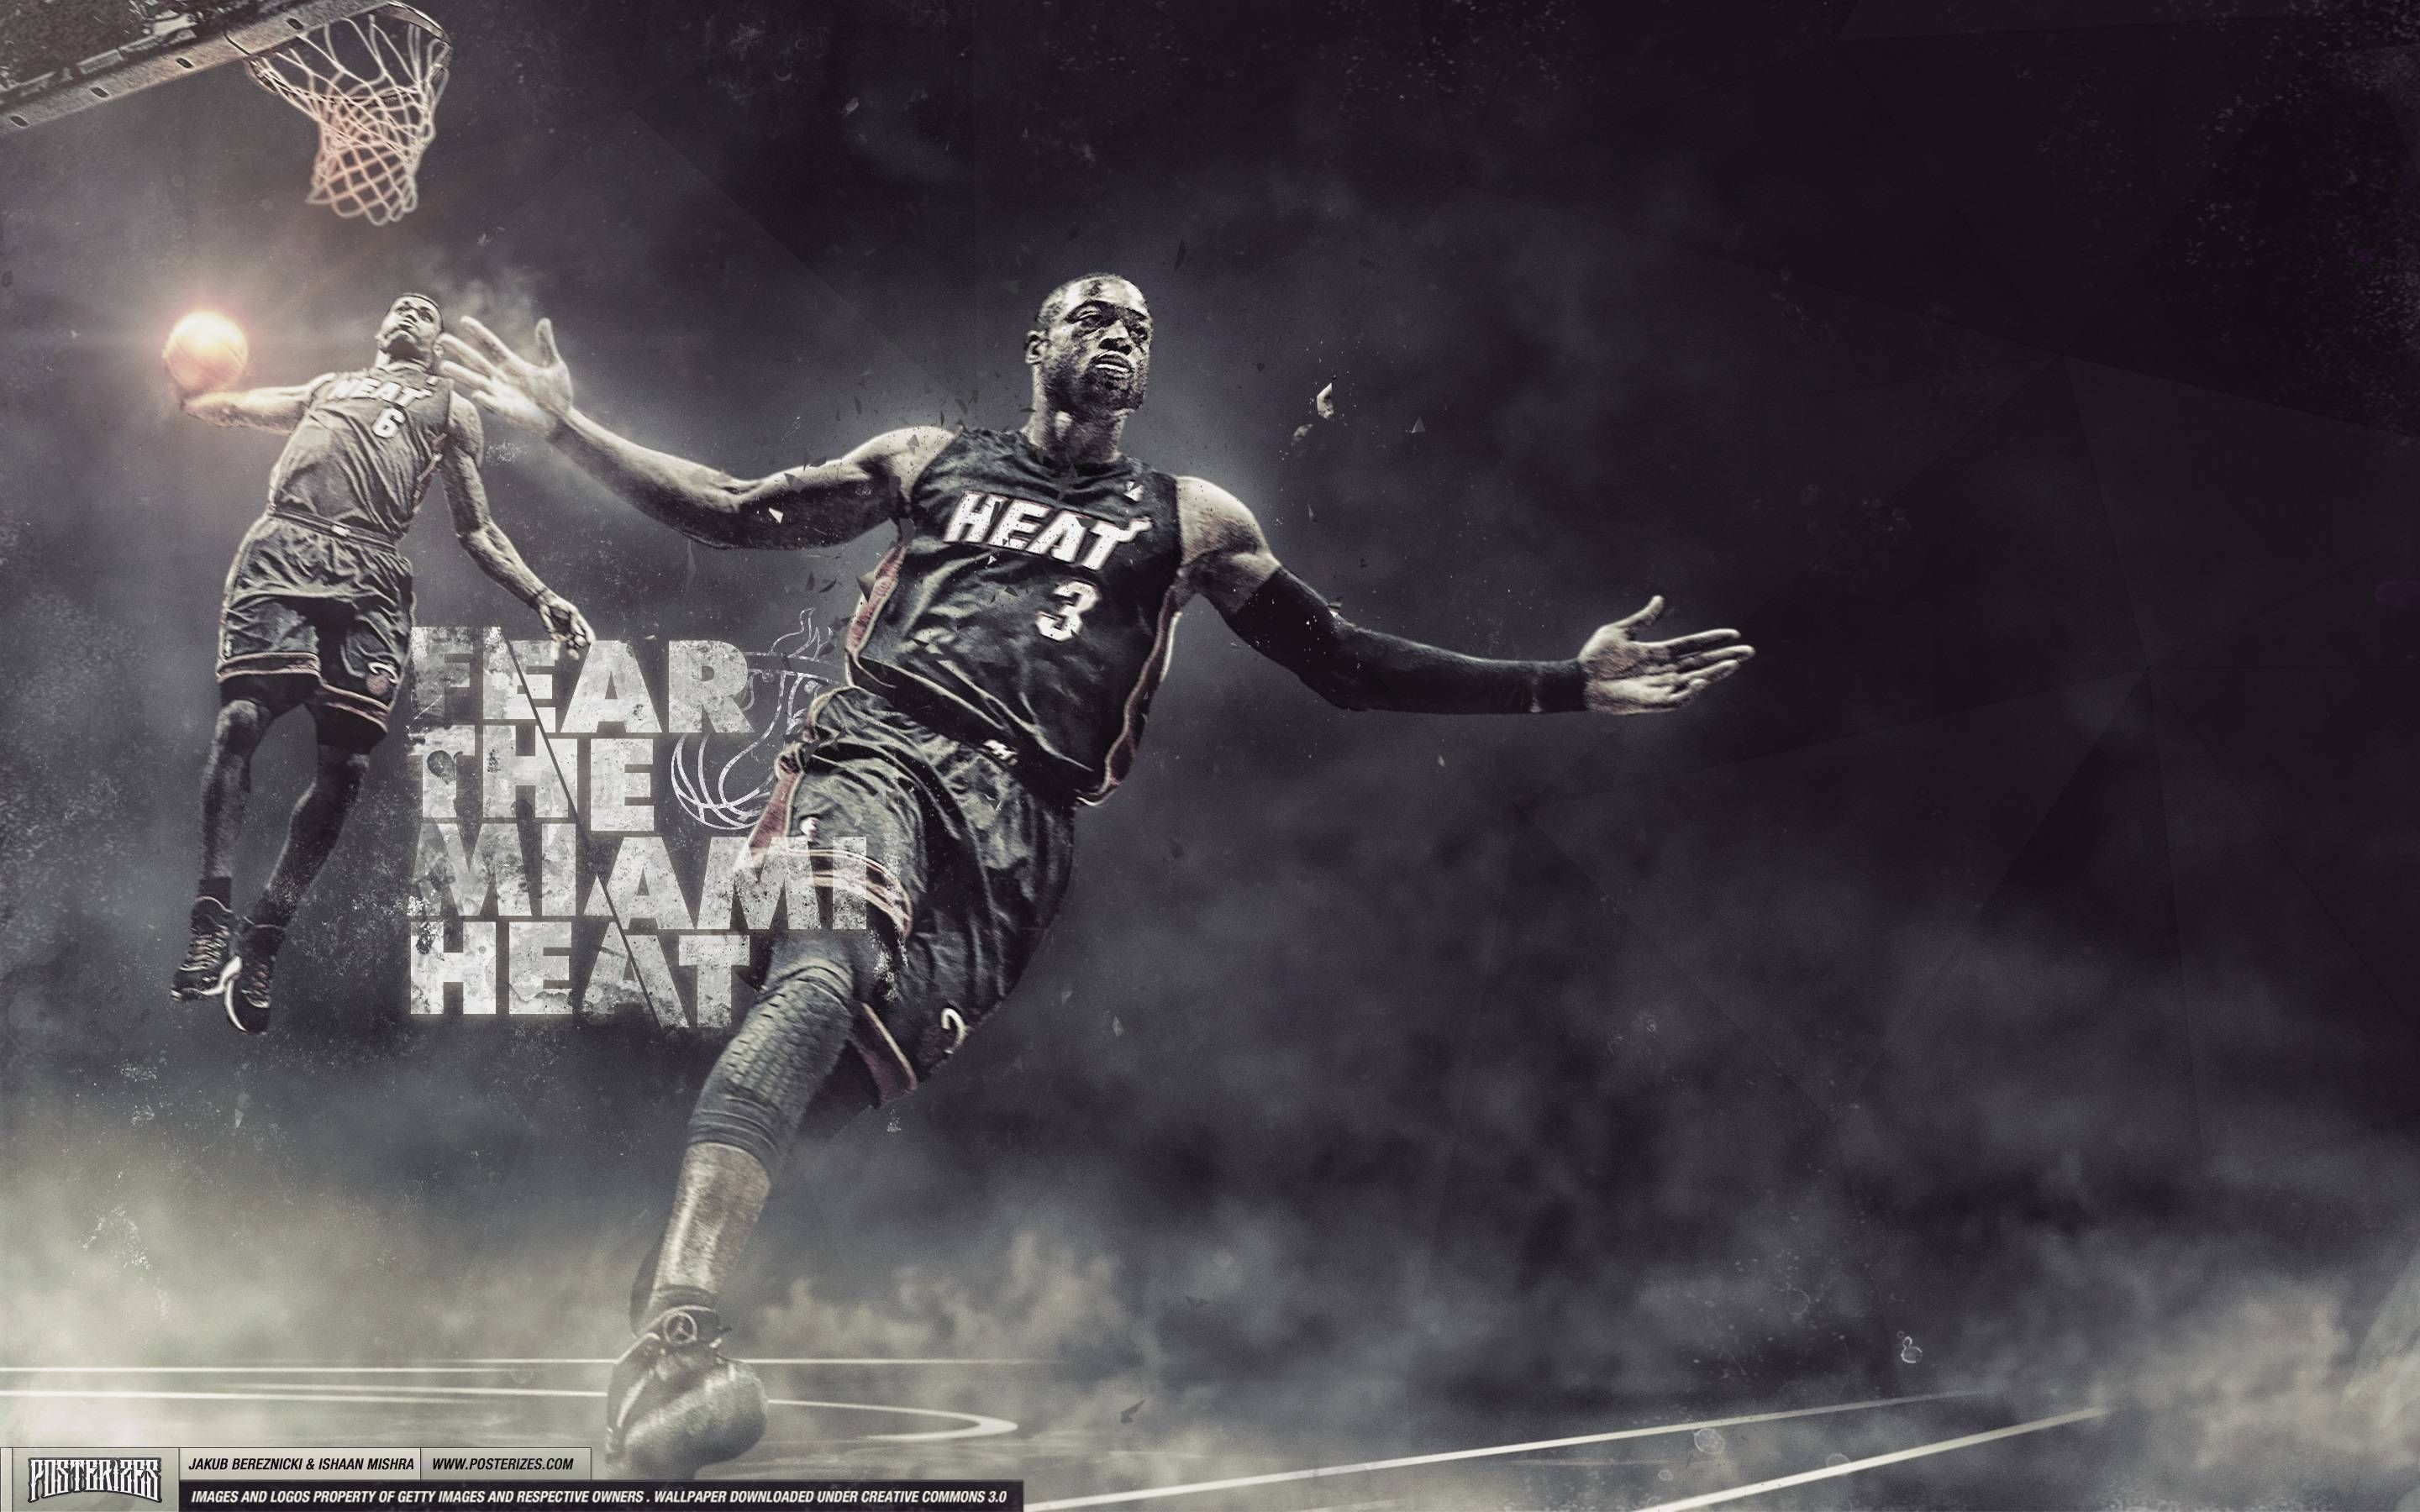 Miami Heat Dwayne Wade Wallpaper Miami Heat Basketball Heat Basketball Lebron James Dwyane Wade